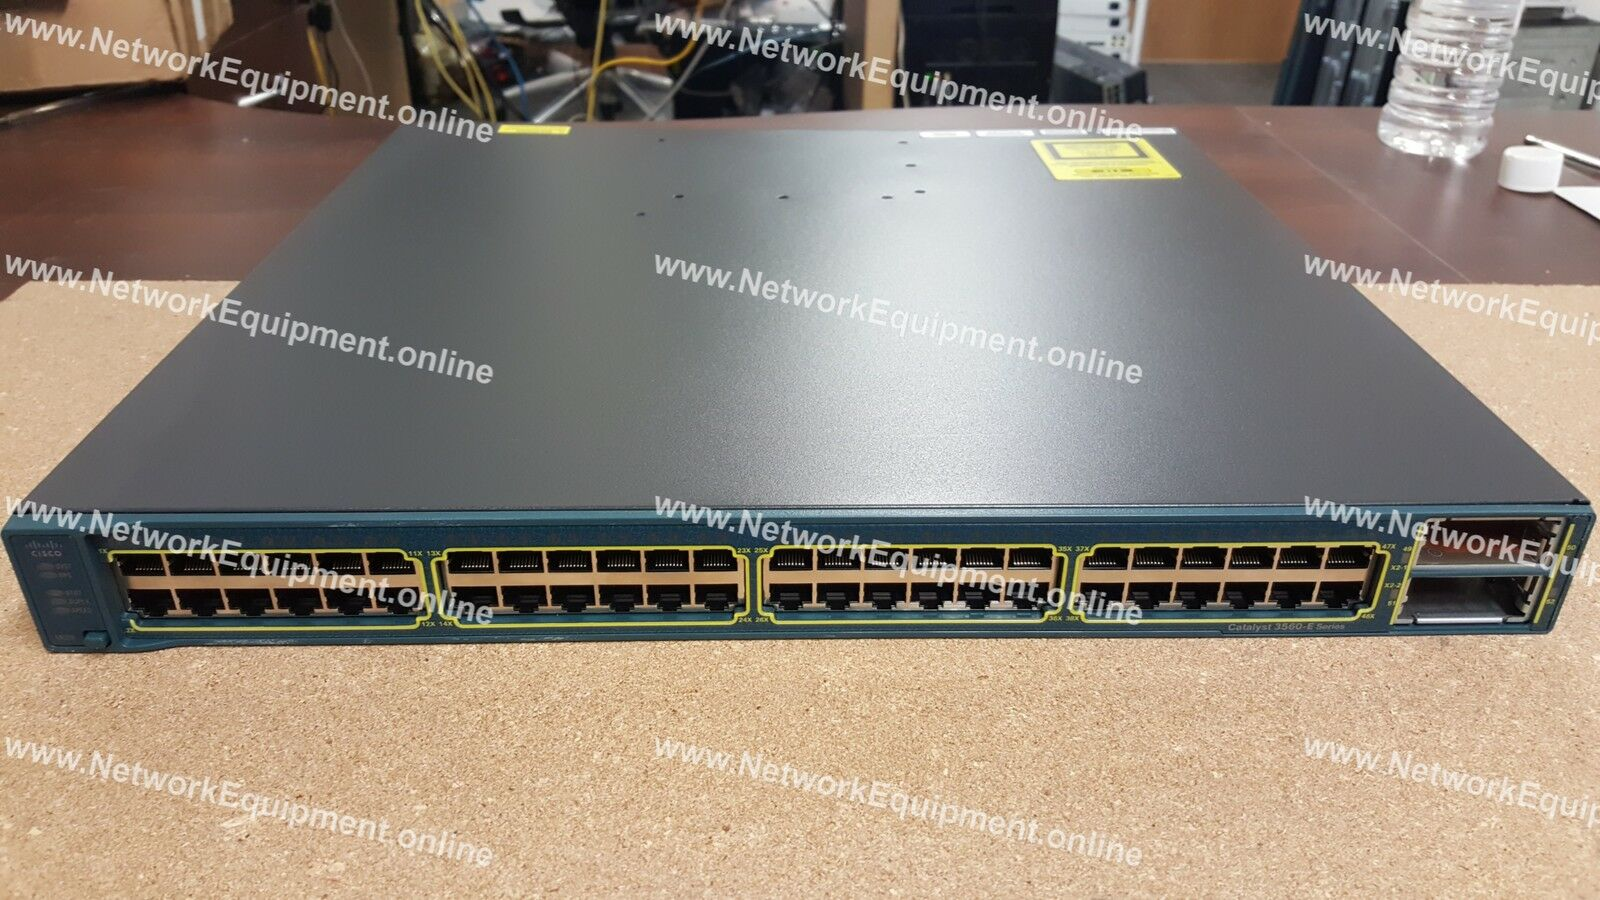 Cisco Ws C3560e 48td E Gigabit Switch 3560e 3560g And Do Routing Lan Switching 1 Sur 3seulement Disponible